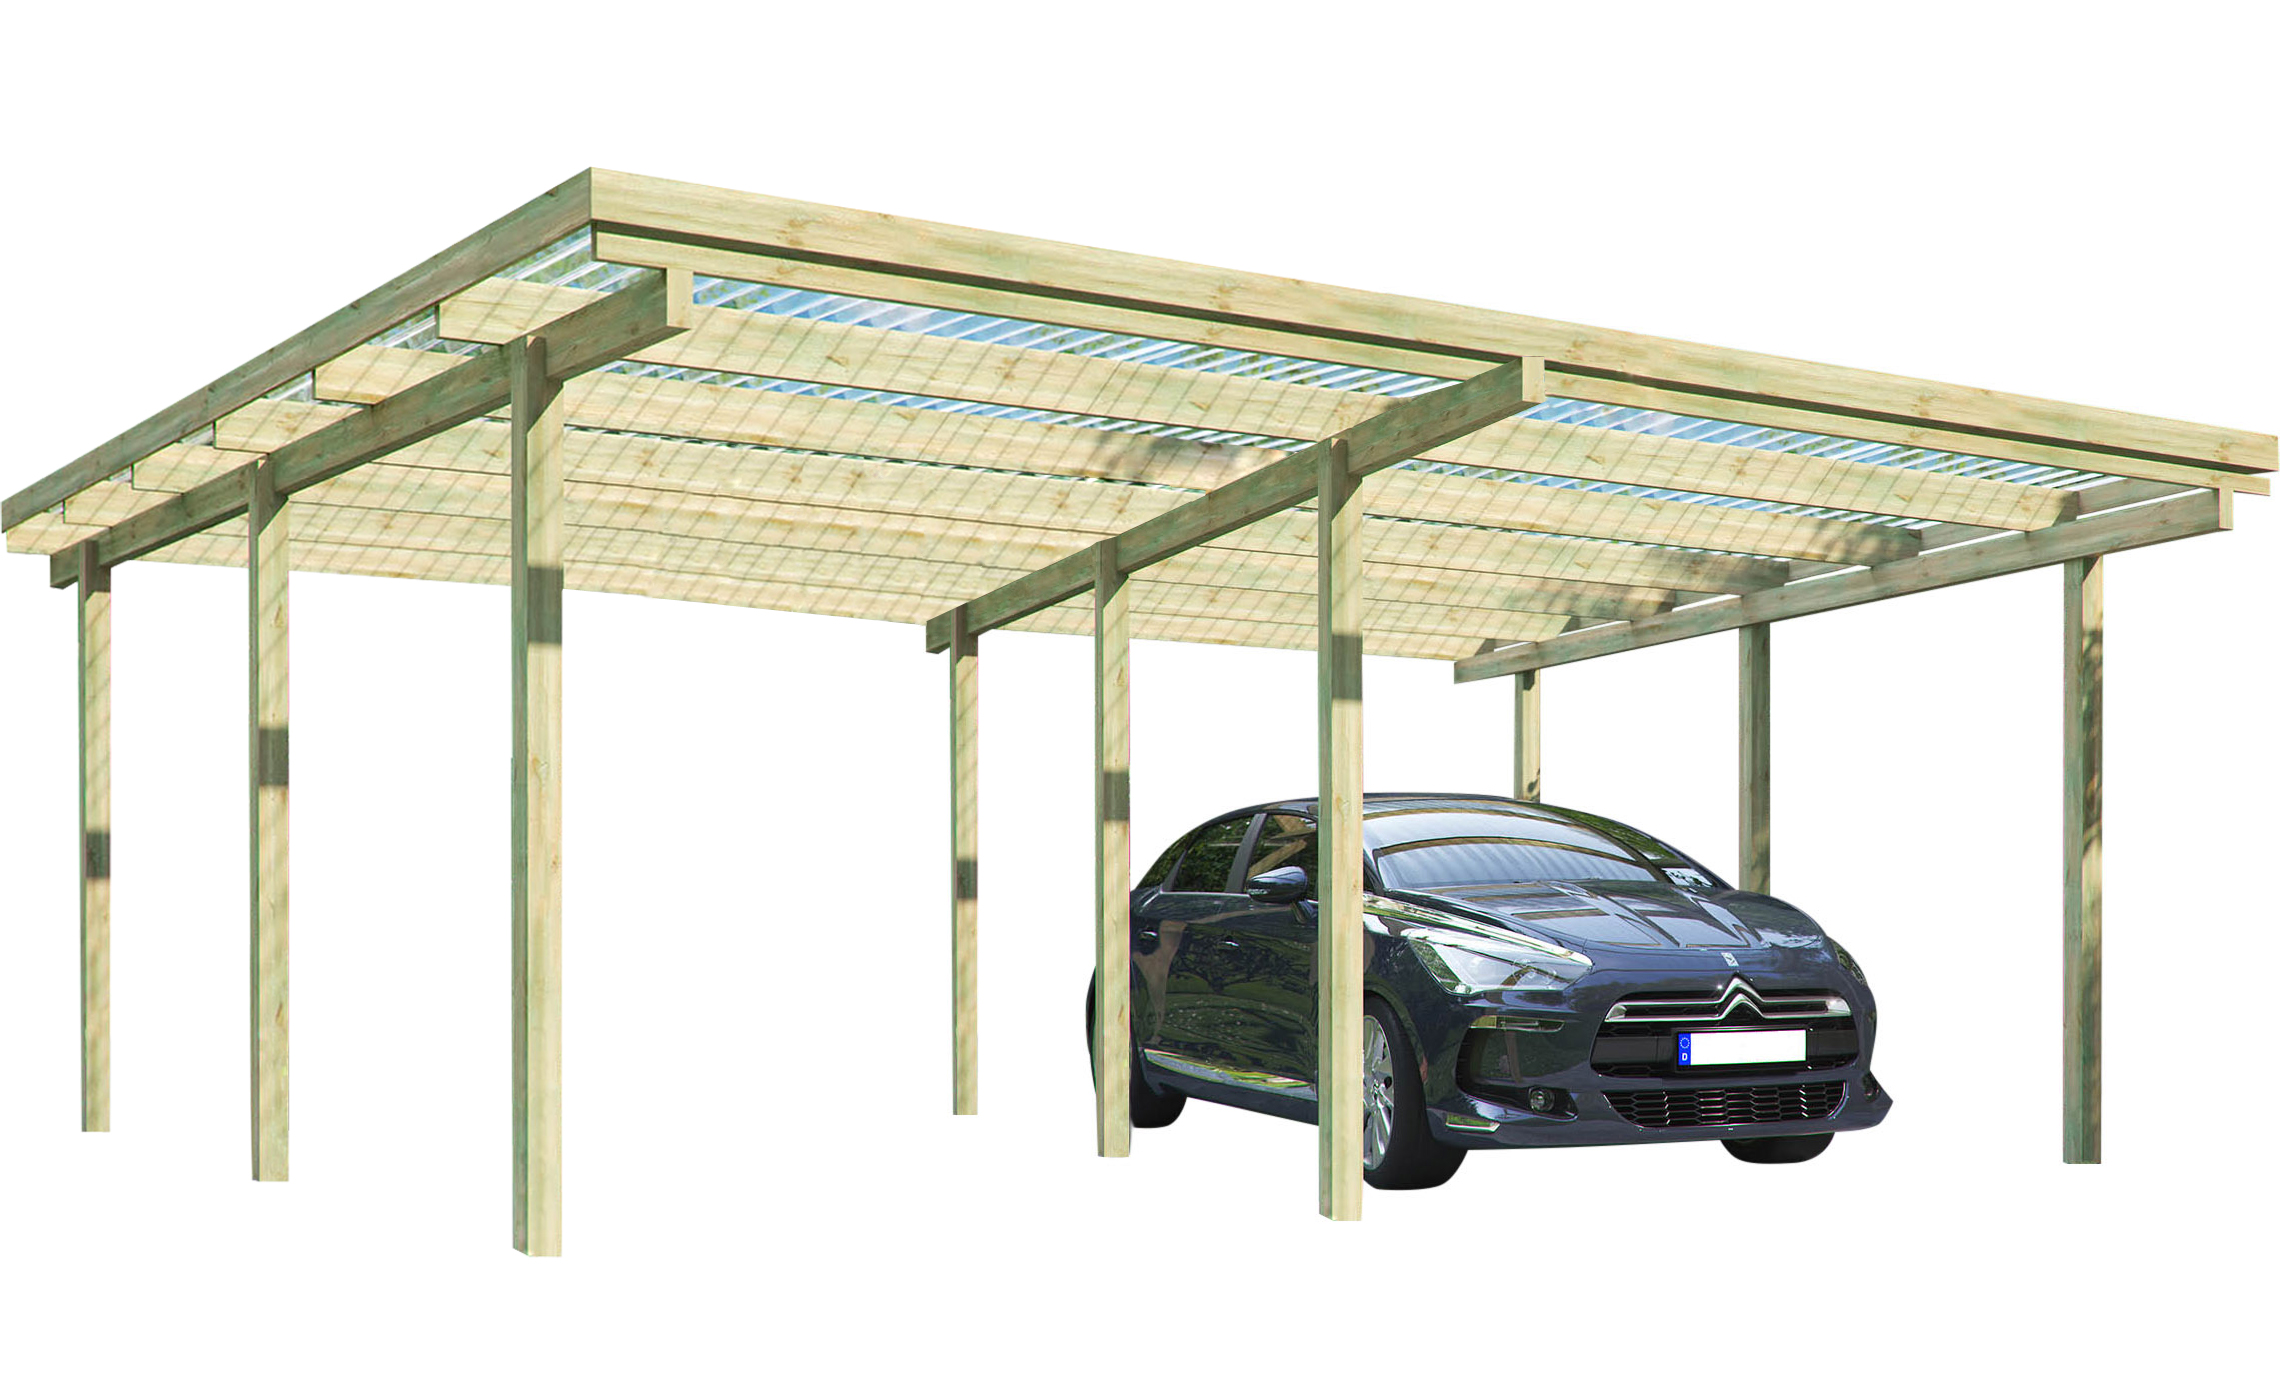 carport elbe 2 doppelcarport 5 81 x 5 10 m carports carports garagen garten freizeit. Black Bedroom Furniture Sets. Home Design Ideas